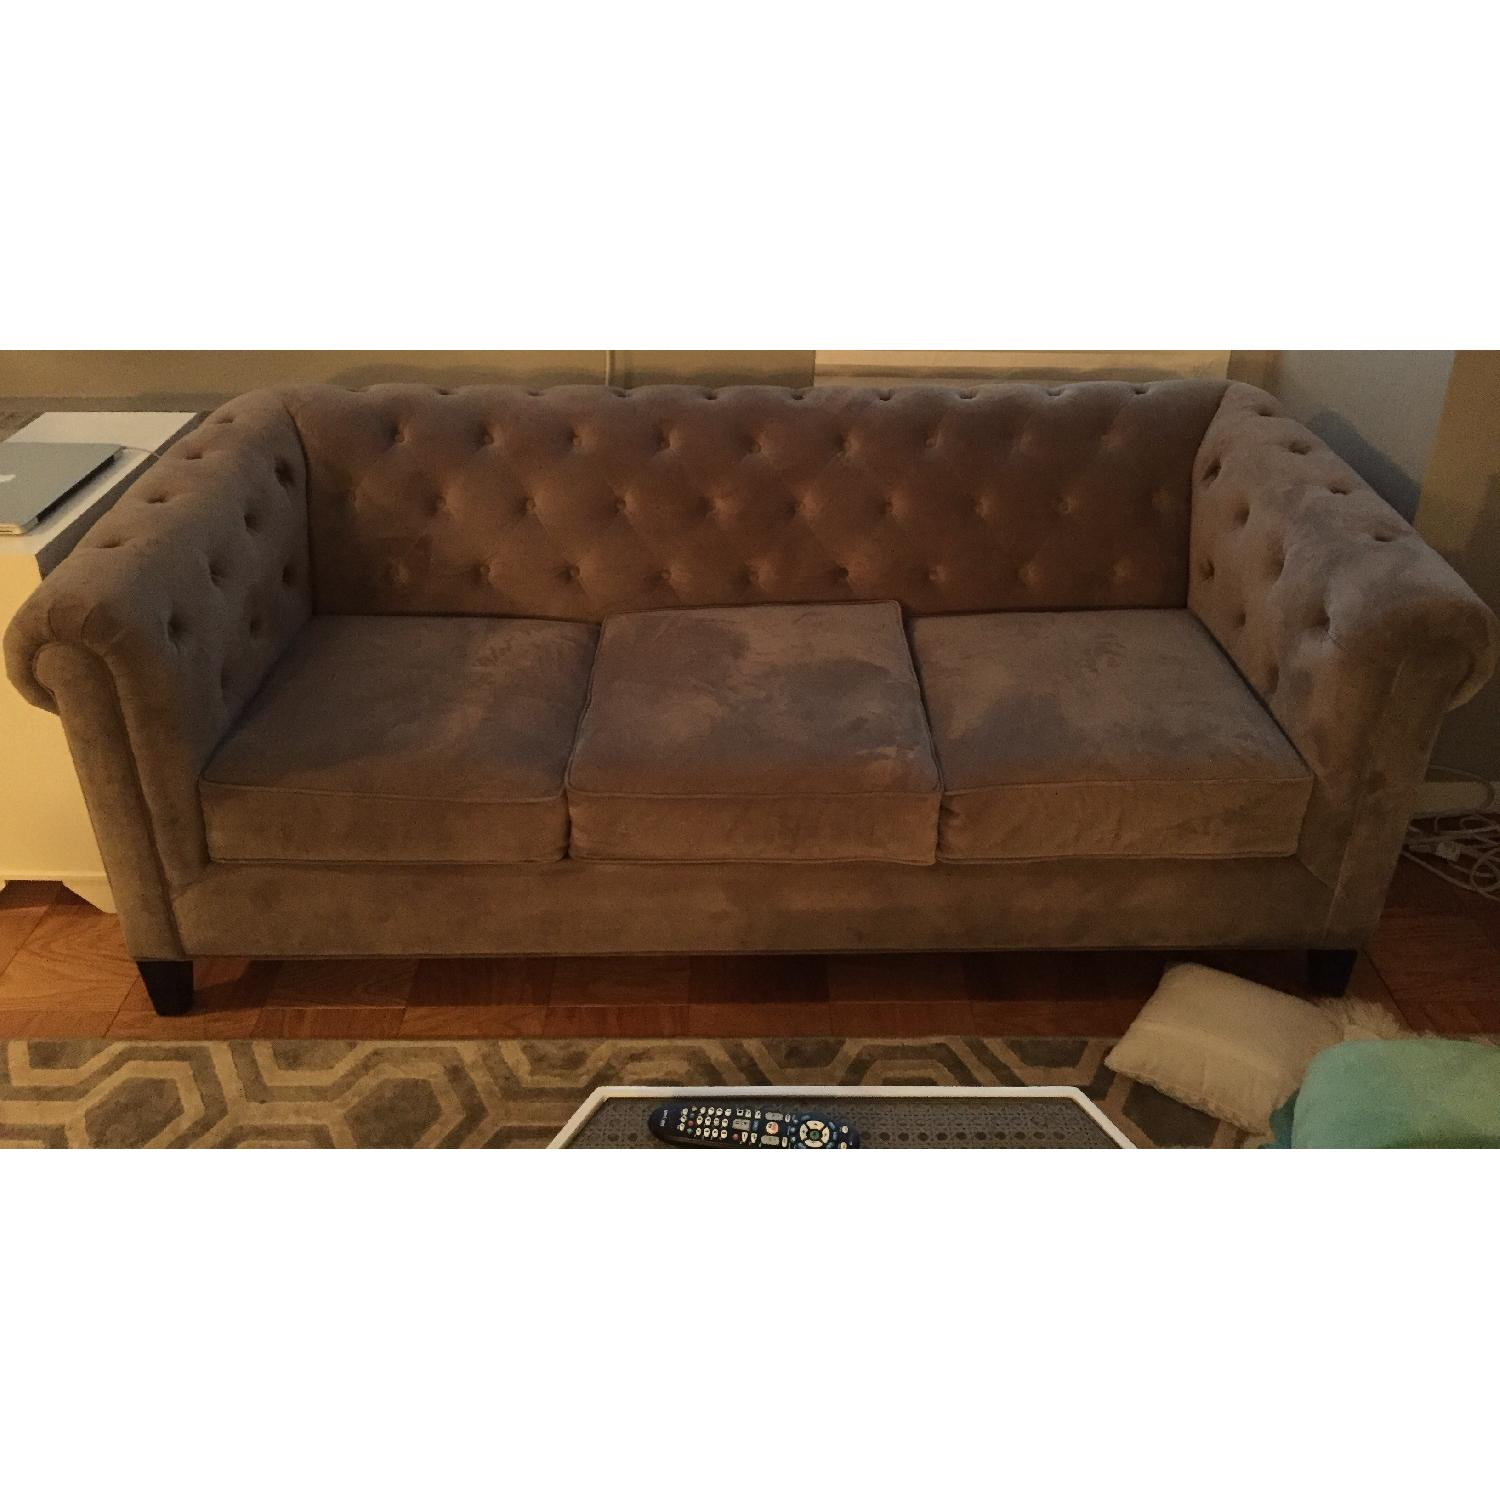 Macy's Grey Tufted Couch - image-1